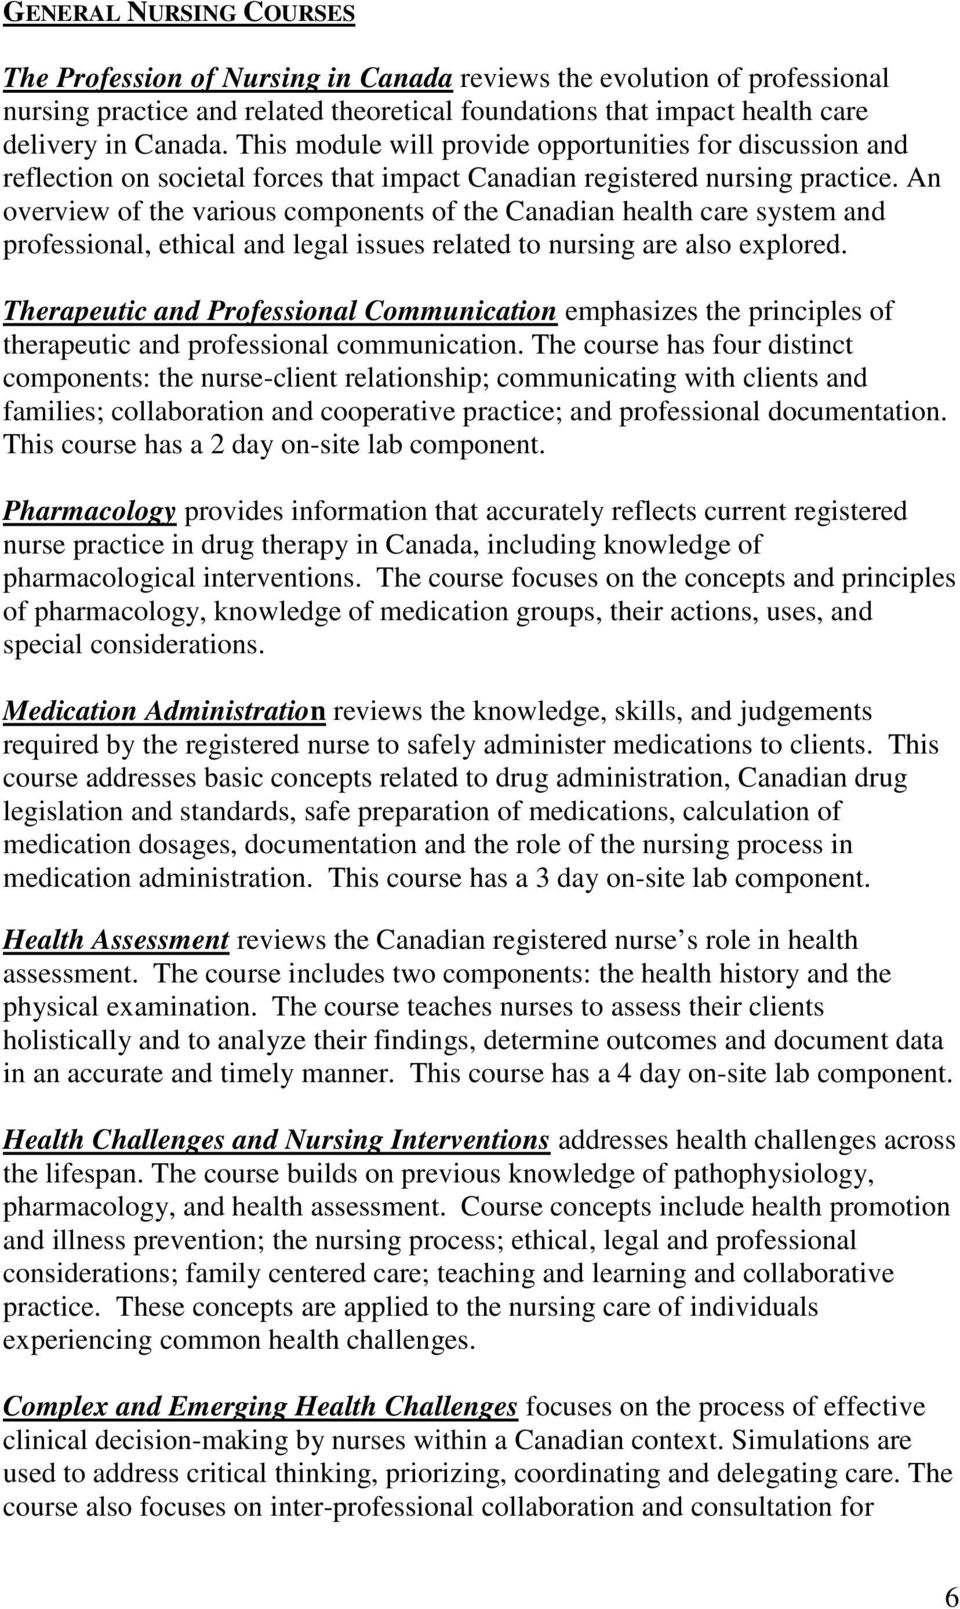 An overview of the various components of the Canadian health care system and professional, ethical and legal issues related to nursing are also explored.